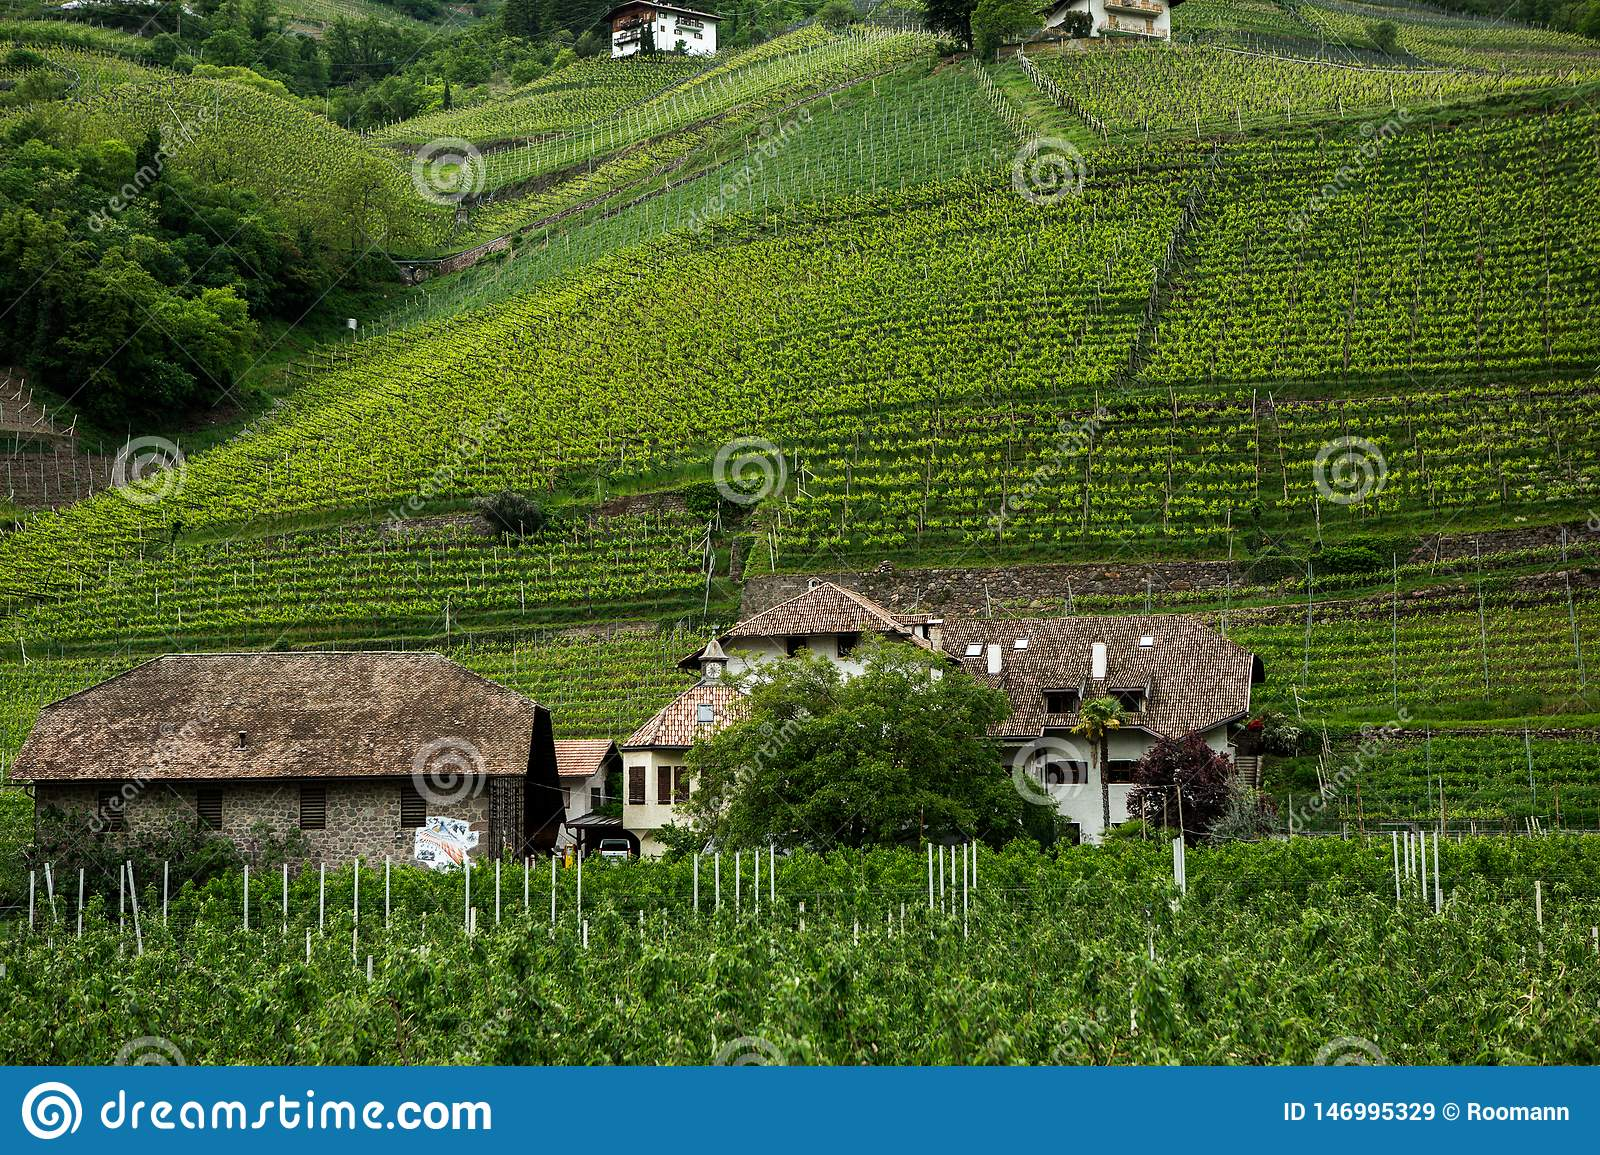 Landscape Of Vineyard In Italy  Spring Landscape With Green